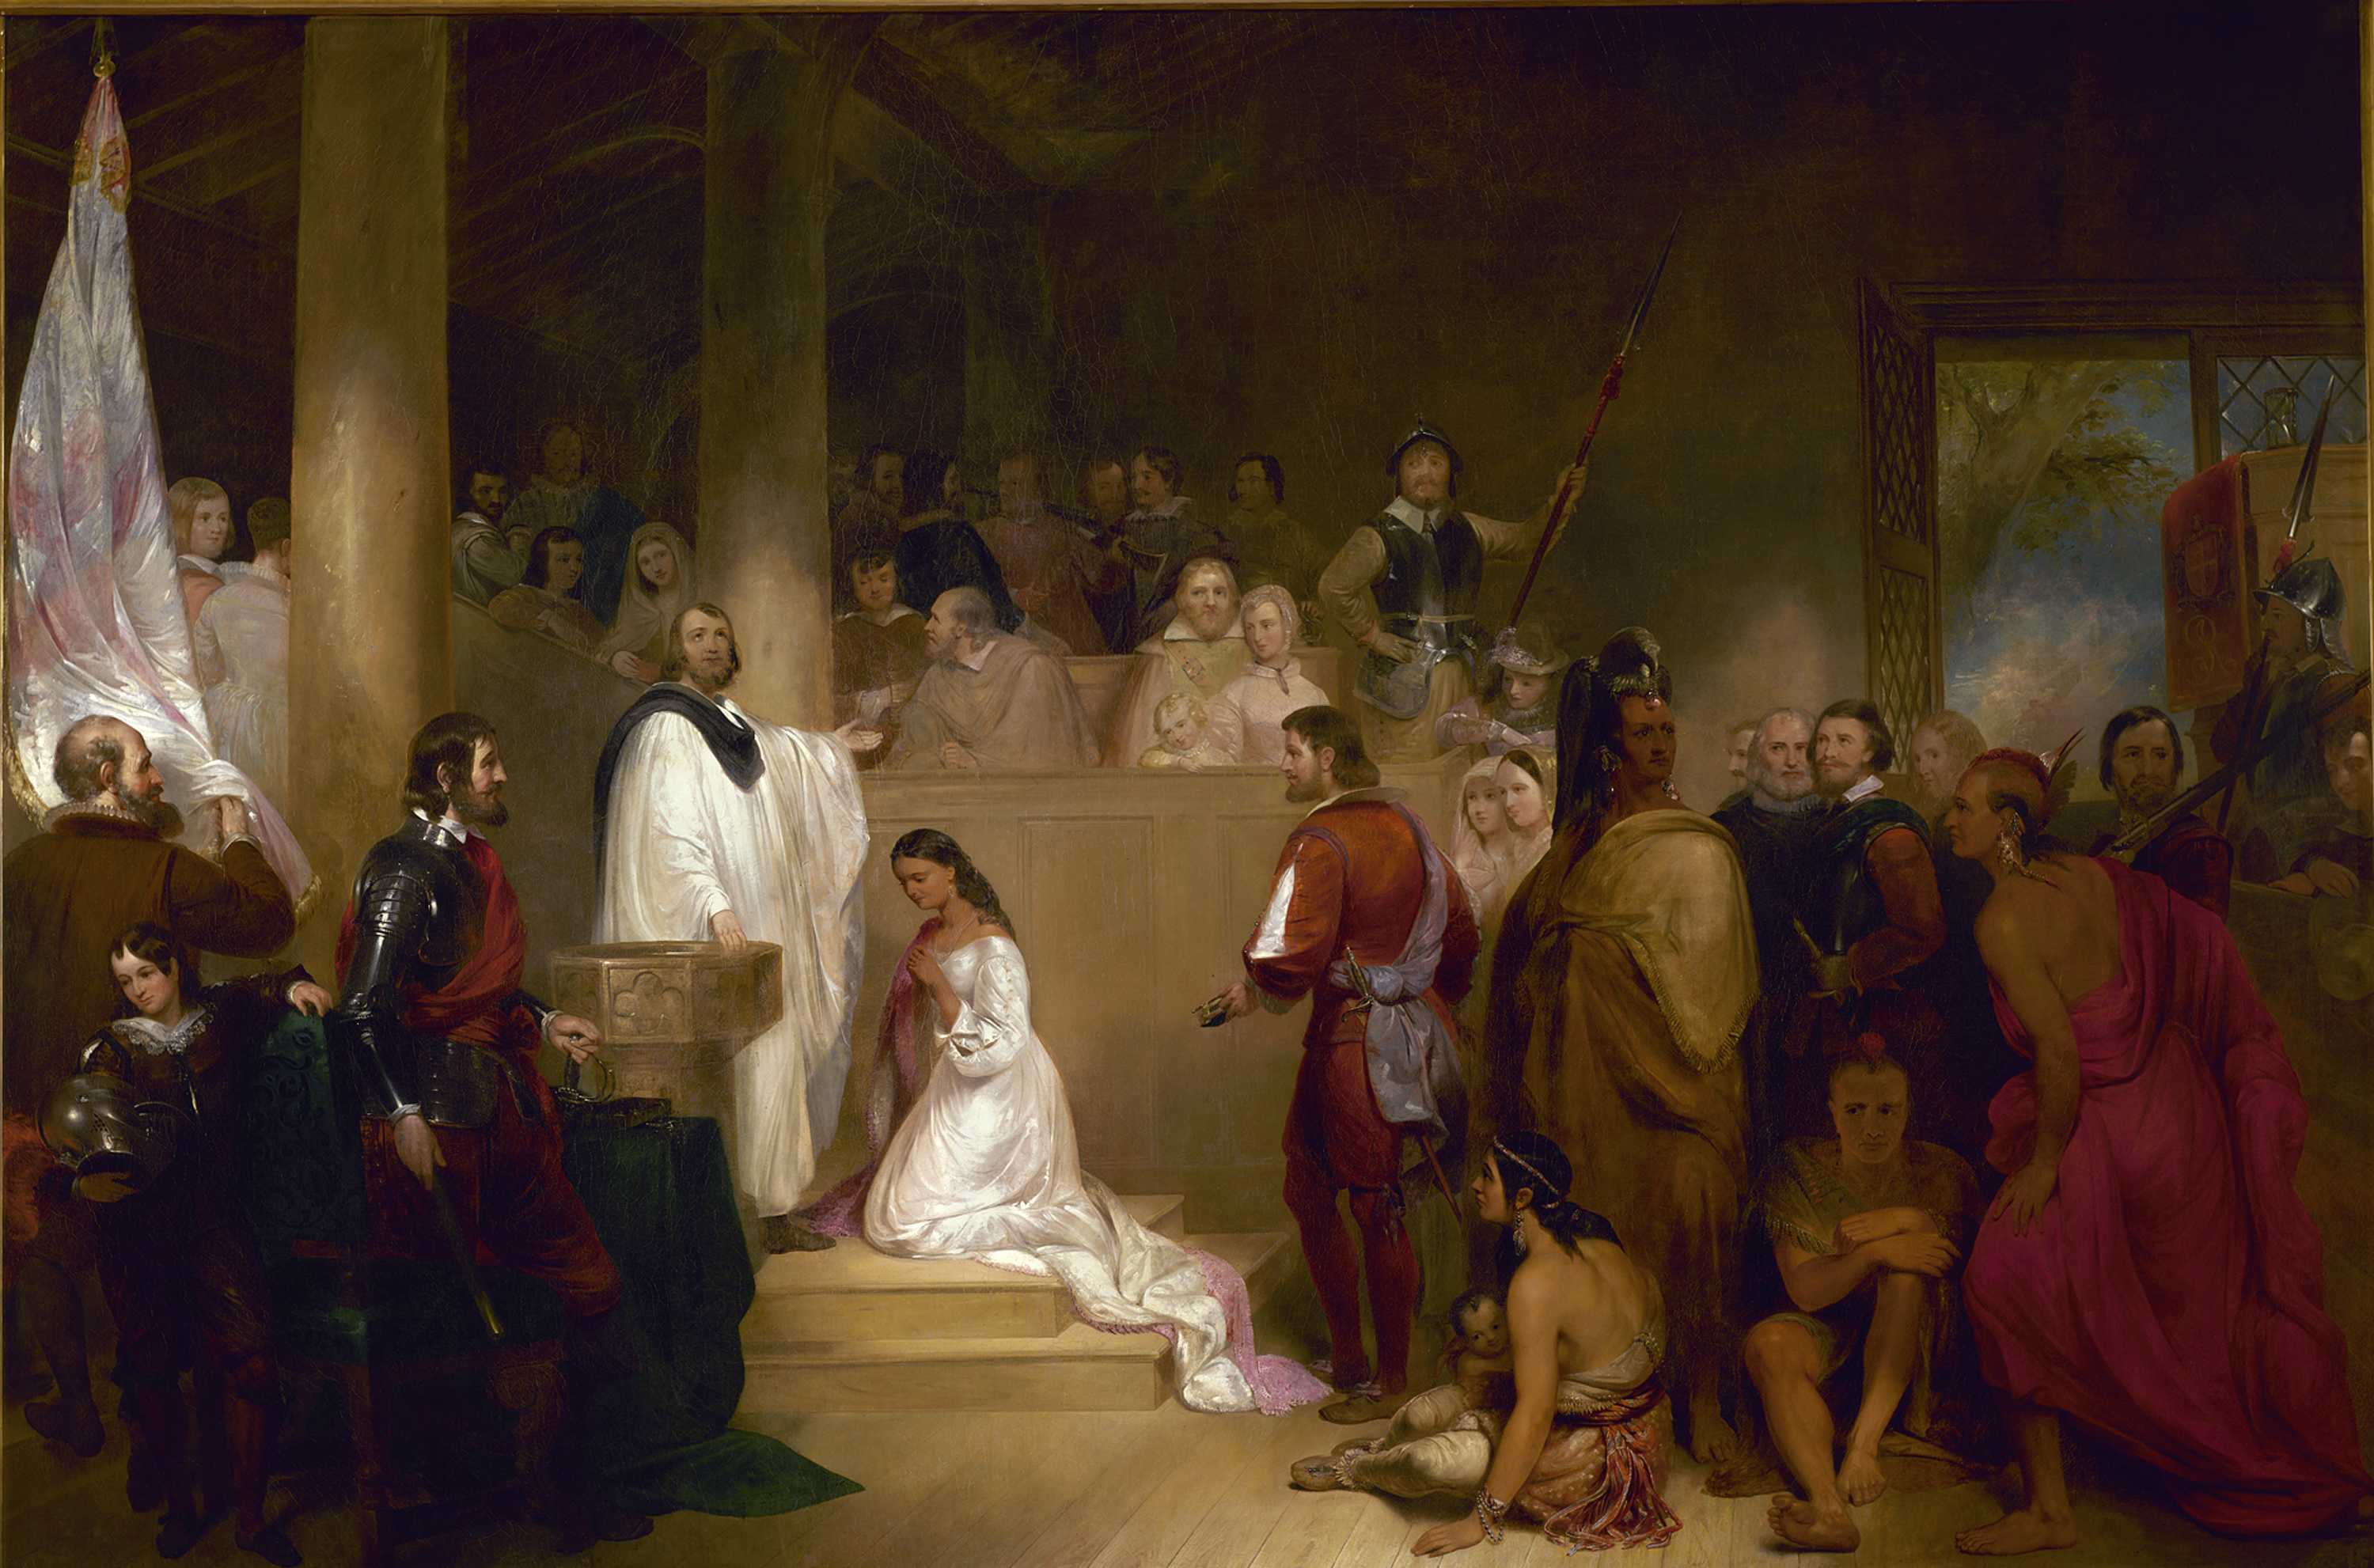 Caption: The Baptism of Pocahontas, Credit: Wikipedia